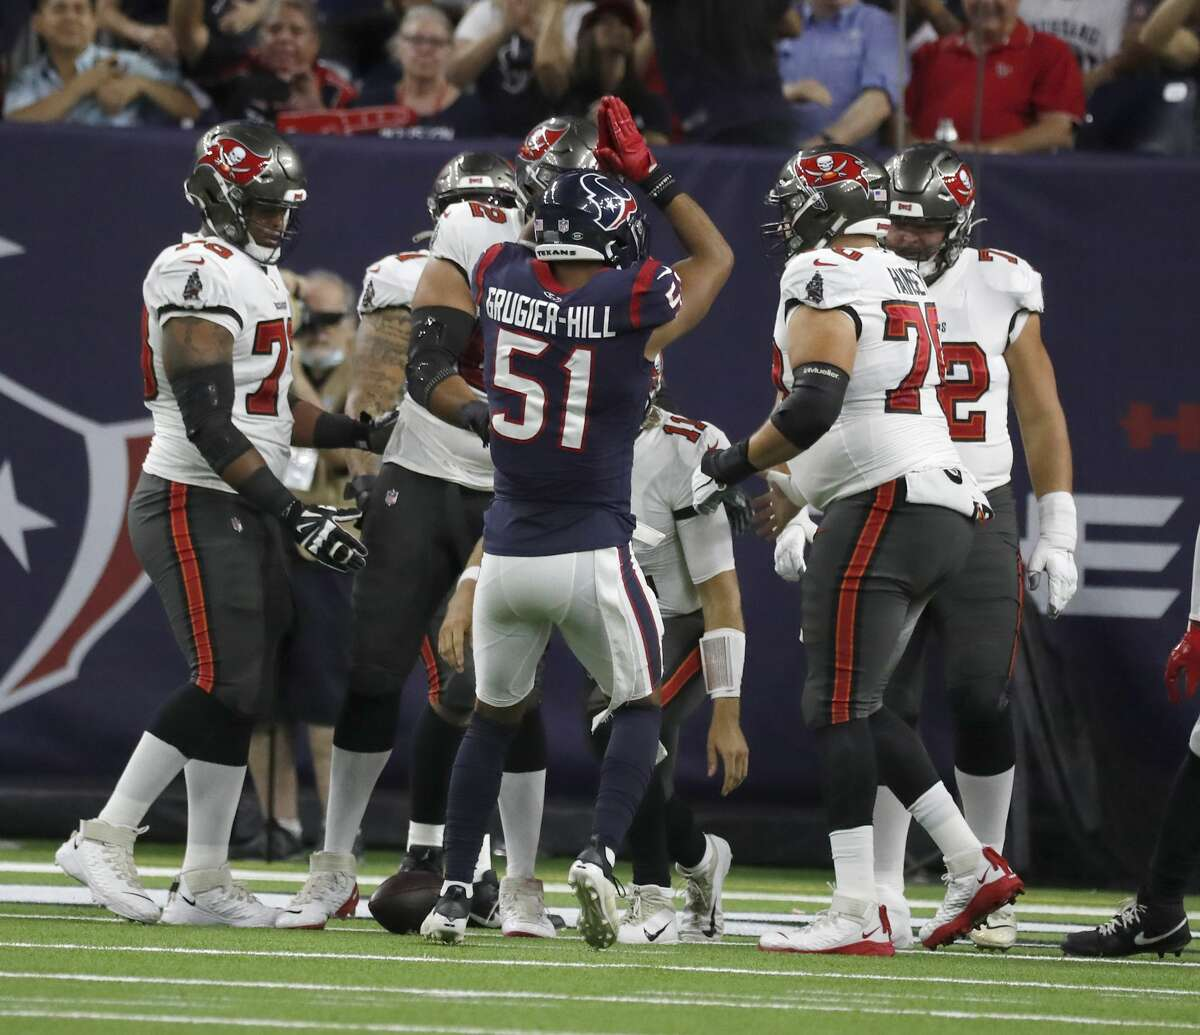 Houston Texans linebacker Kamu Grugier-Hill (51) signals a safety during the first half of an NFL pre-season football game at NRG Stadium, Saturday, August 28, 2021, in Houston.